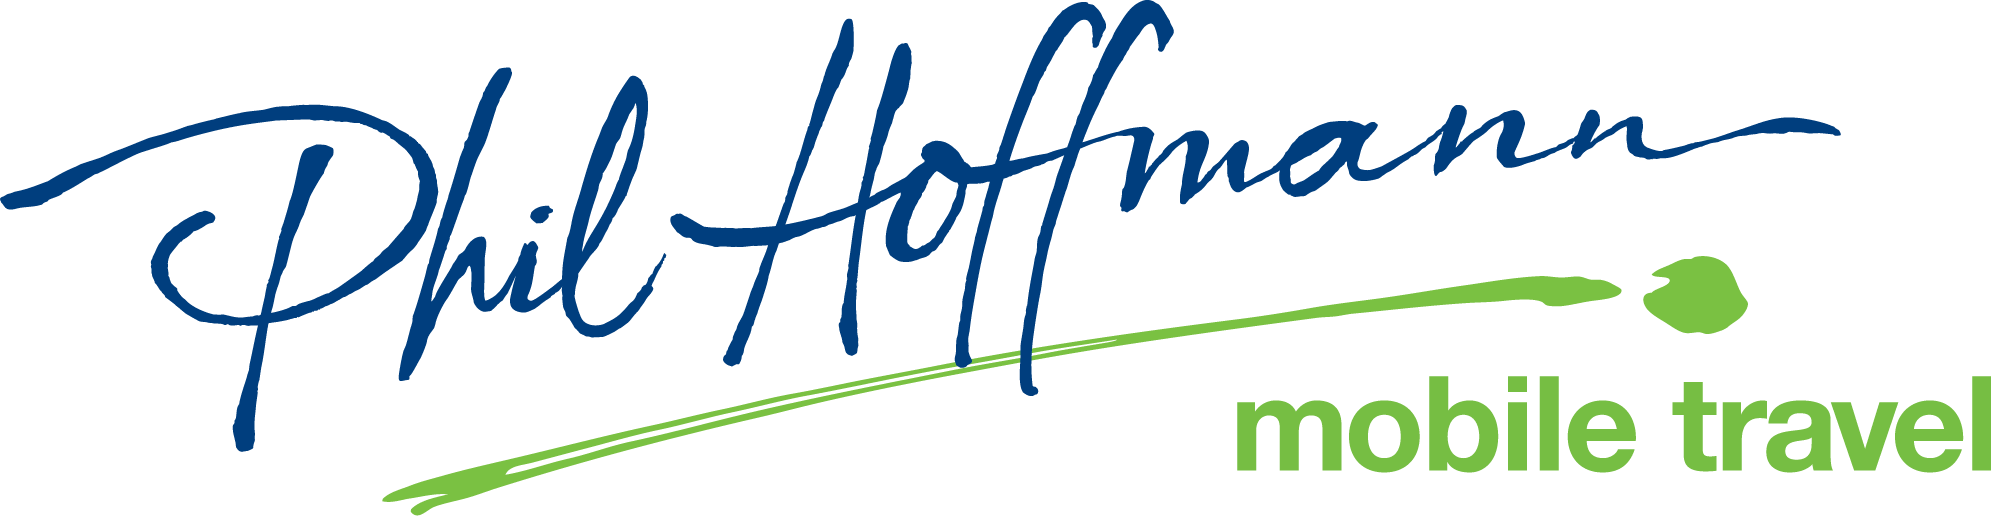 Phil Hoffmann Mobile Travel Logo